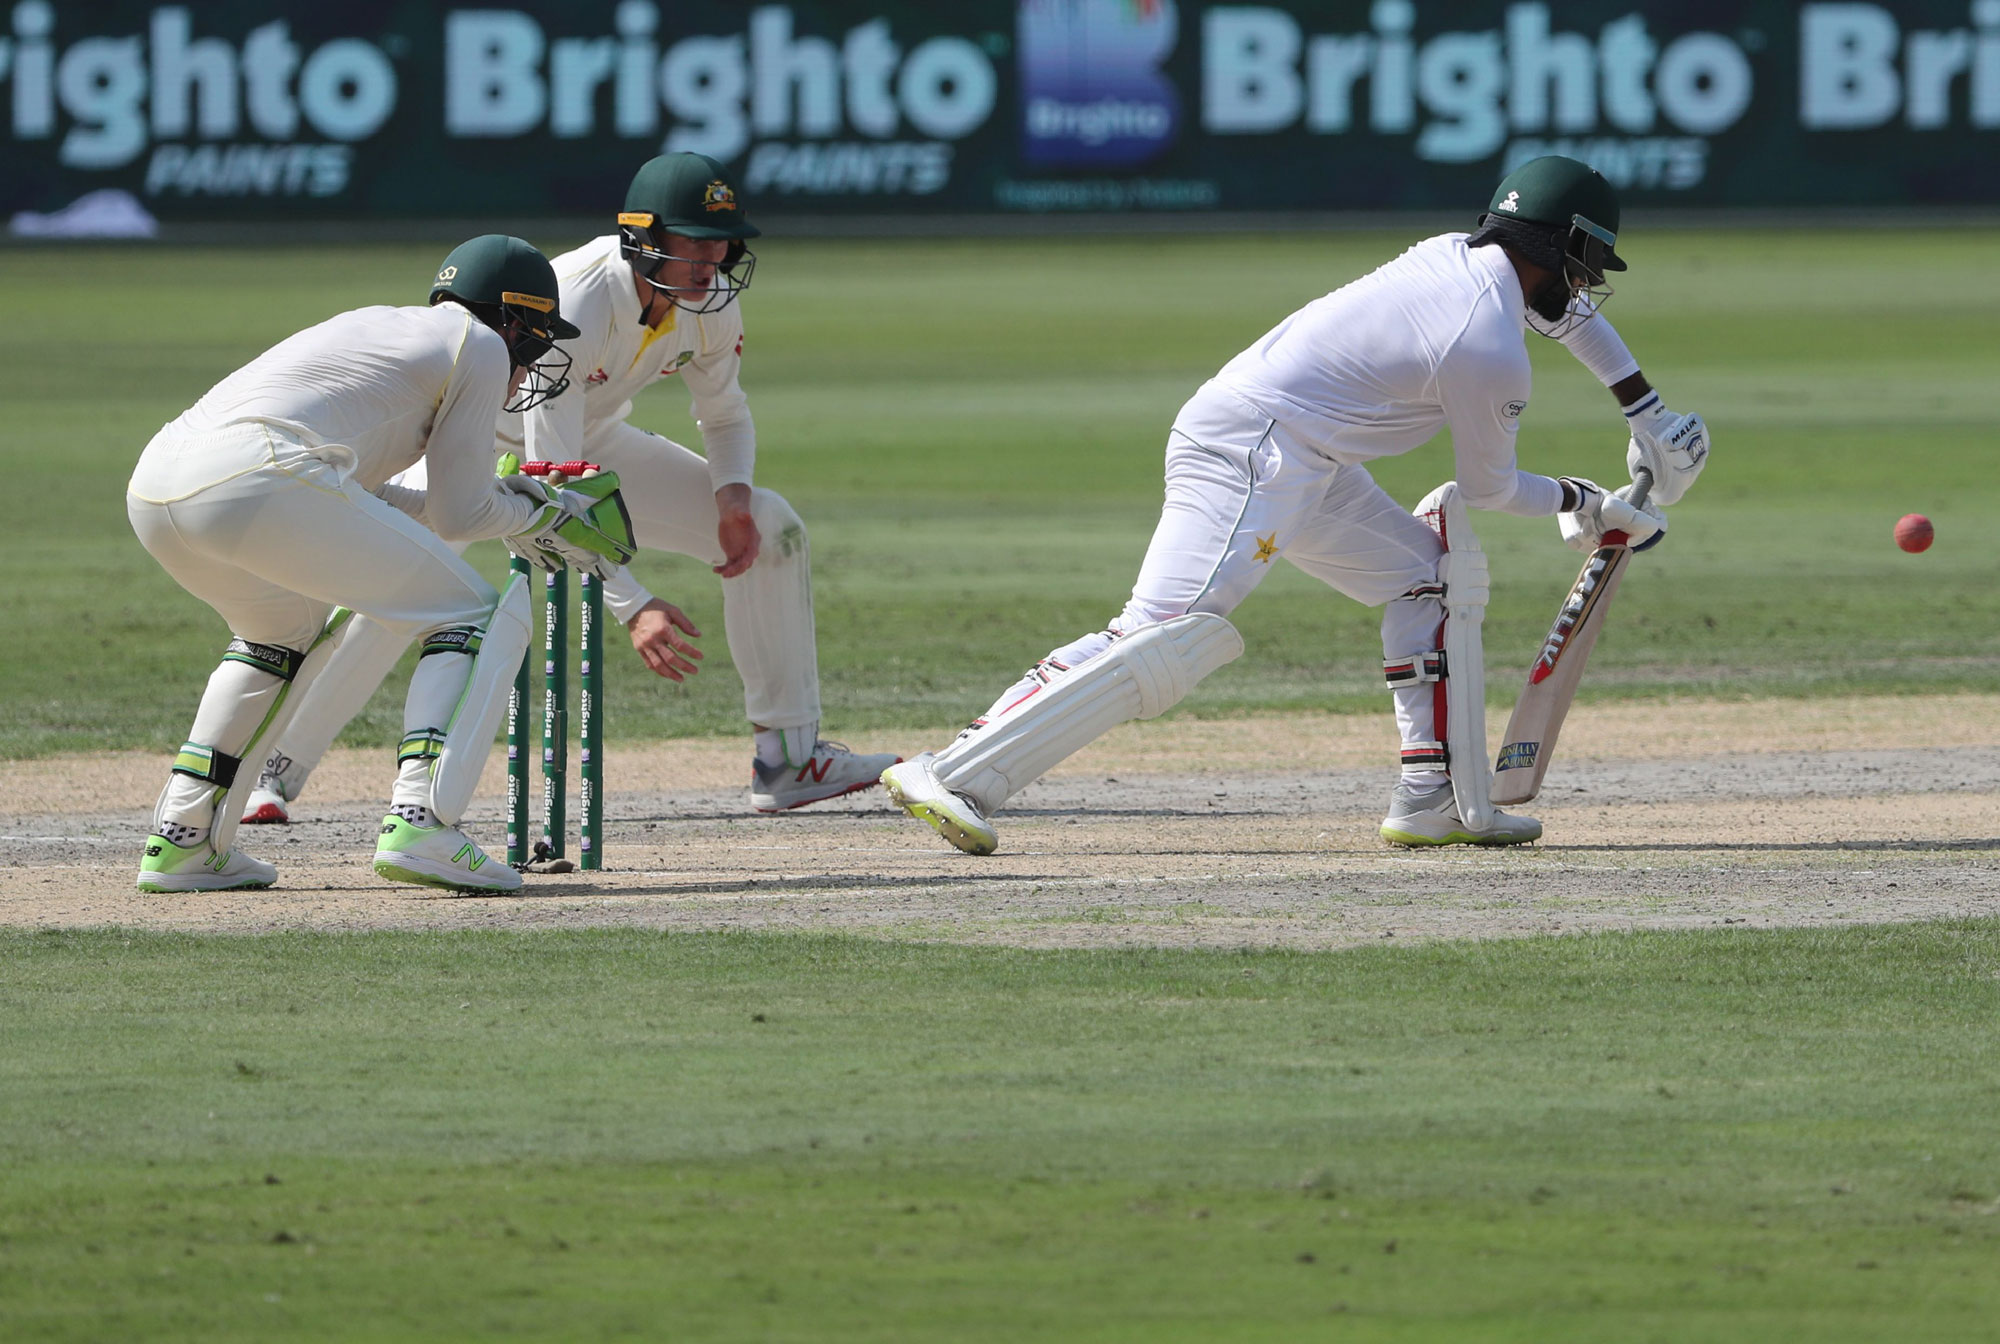 1.	Pakistan cricketer Imam Ul Haq (R) bats on day one of the 1st test cricket match between Australia and Pakistan at the Dubai International Cricket Stadium in Dubai on October 7, 2018. - Pakistan openers Mohammad Hafeez and Imam-ul-Haq put on a solid un